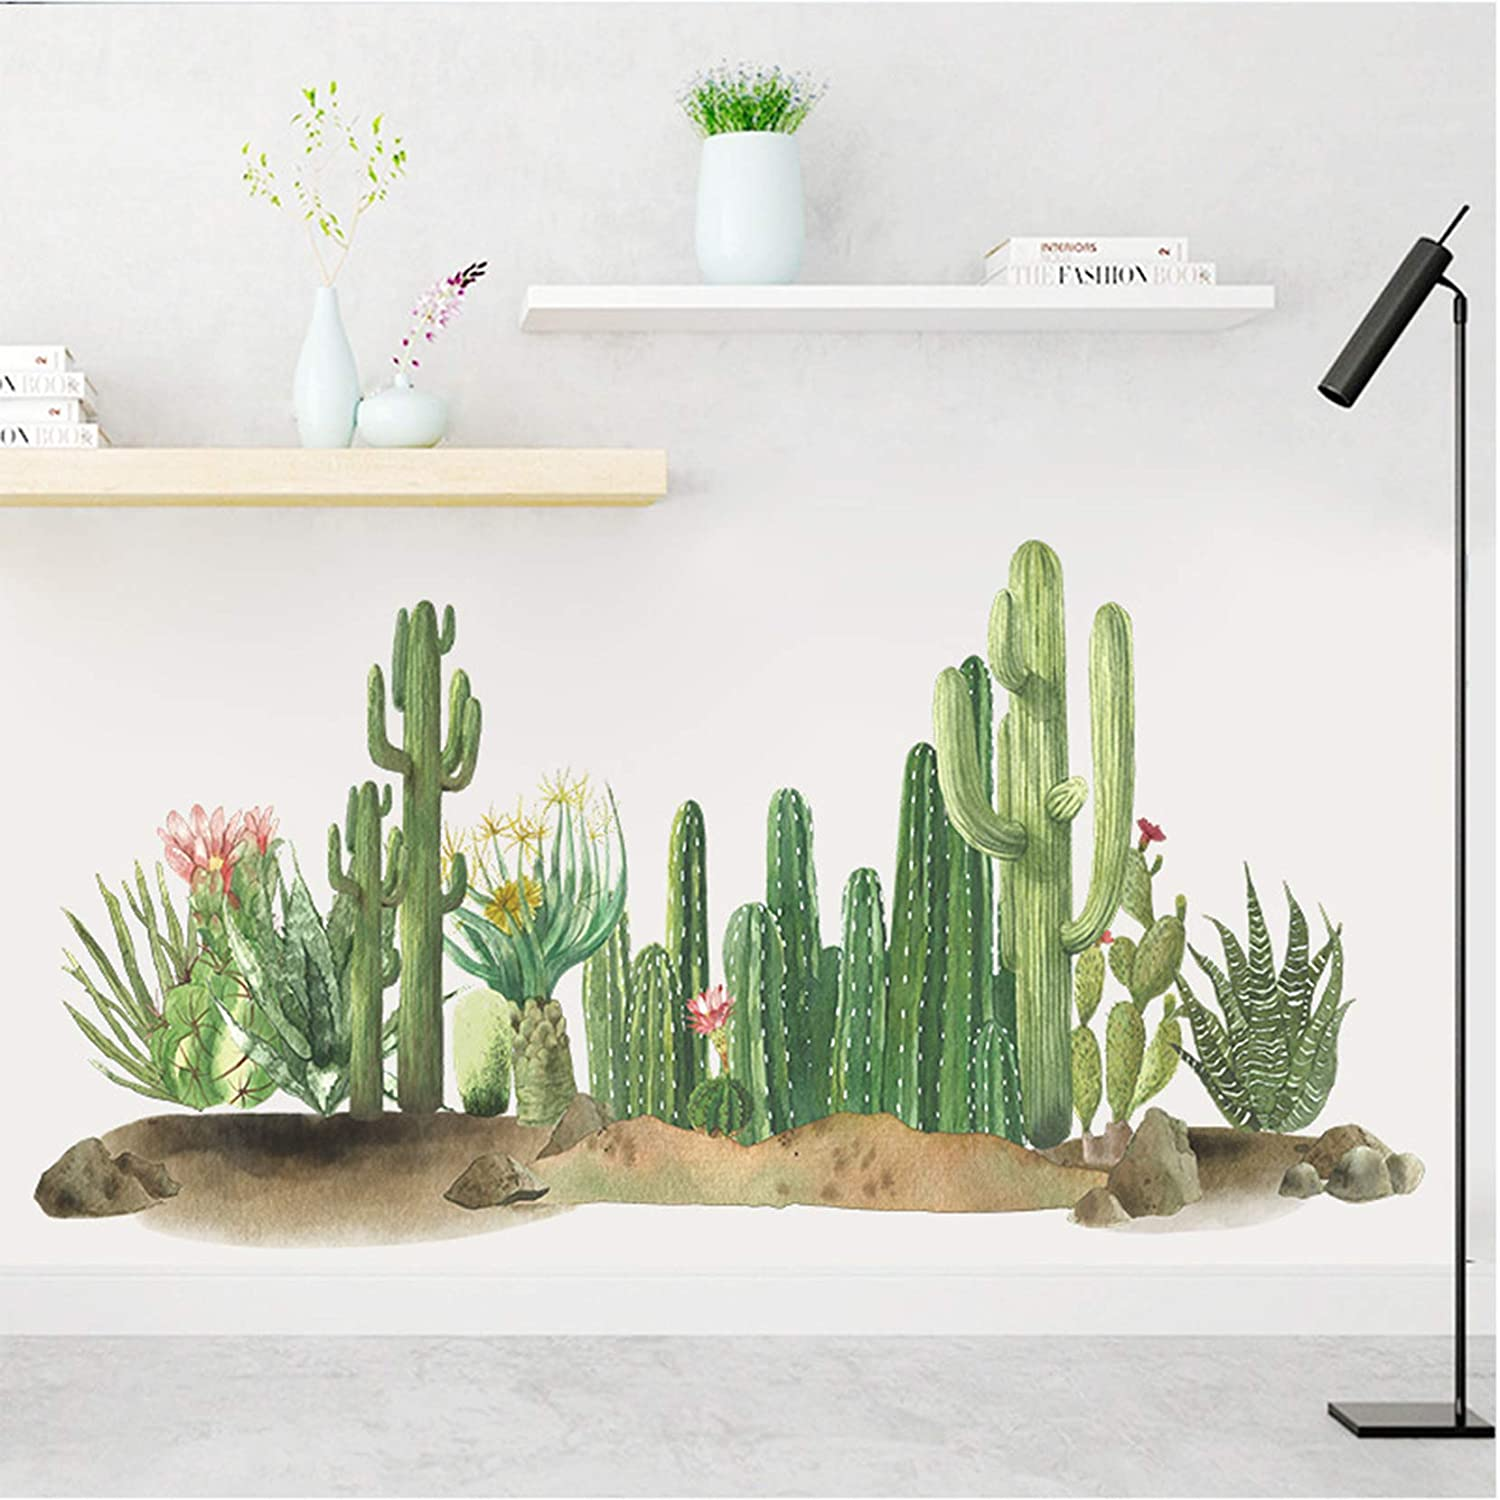 MOLANCIA Green Plants Wall Decal,Cactus Wall Stickers, Giant Cactus Succulent Wall Art Mural, DIY Removable Cactus Vinyl Wallpaper Wall Art Decor for Living Room Bedroom Kitchen Nursery Home Décor